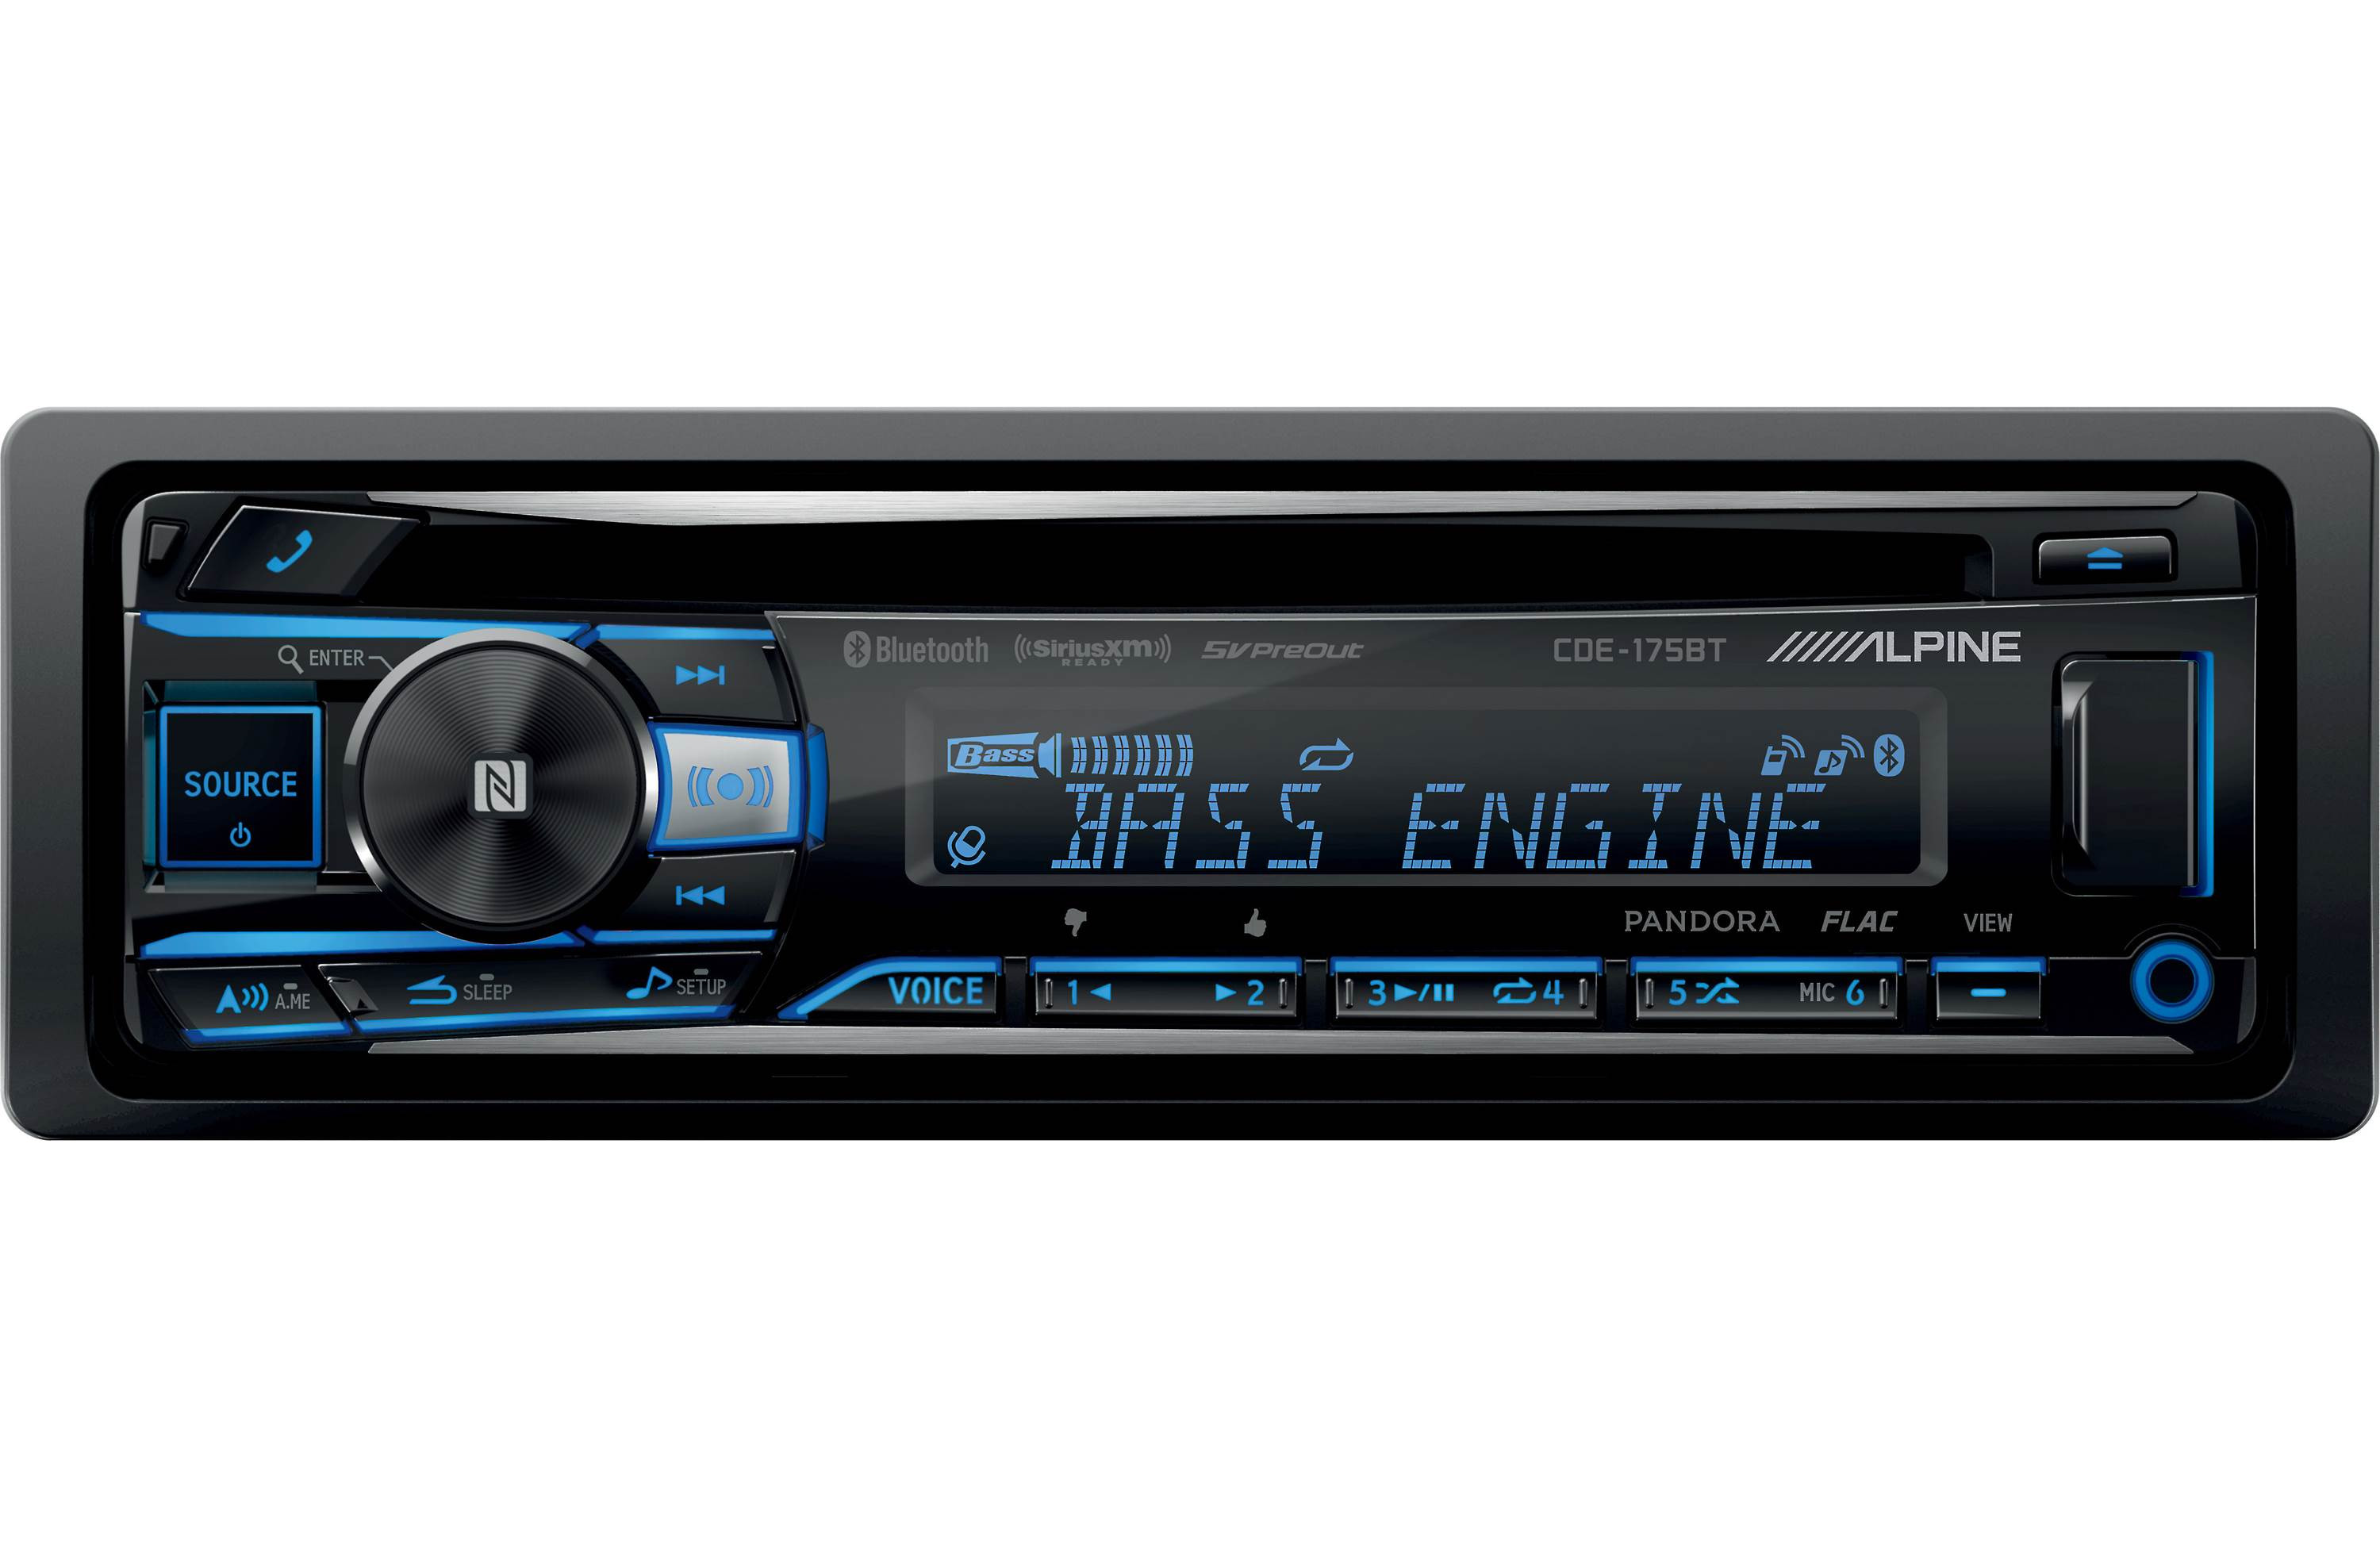 Alpine Single DIN Bluetooth In-Dash CD/AM/FM Car Stereo Receiver With Near Field Communication